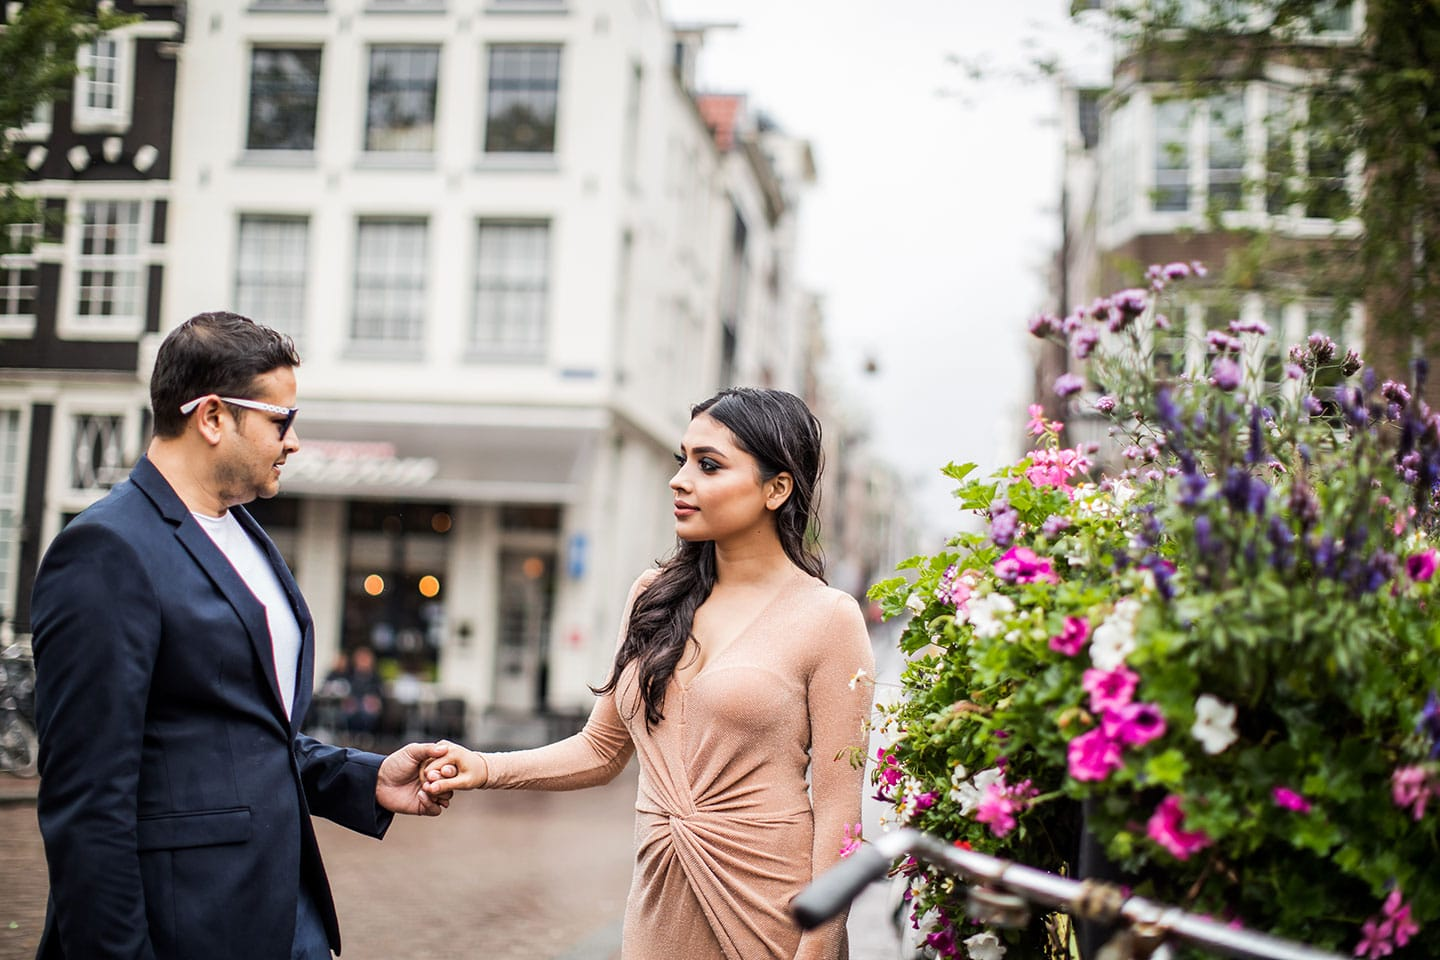 Prewedding photography Amsterdam, the Netherlands